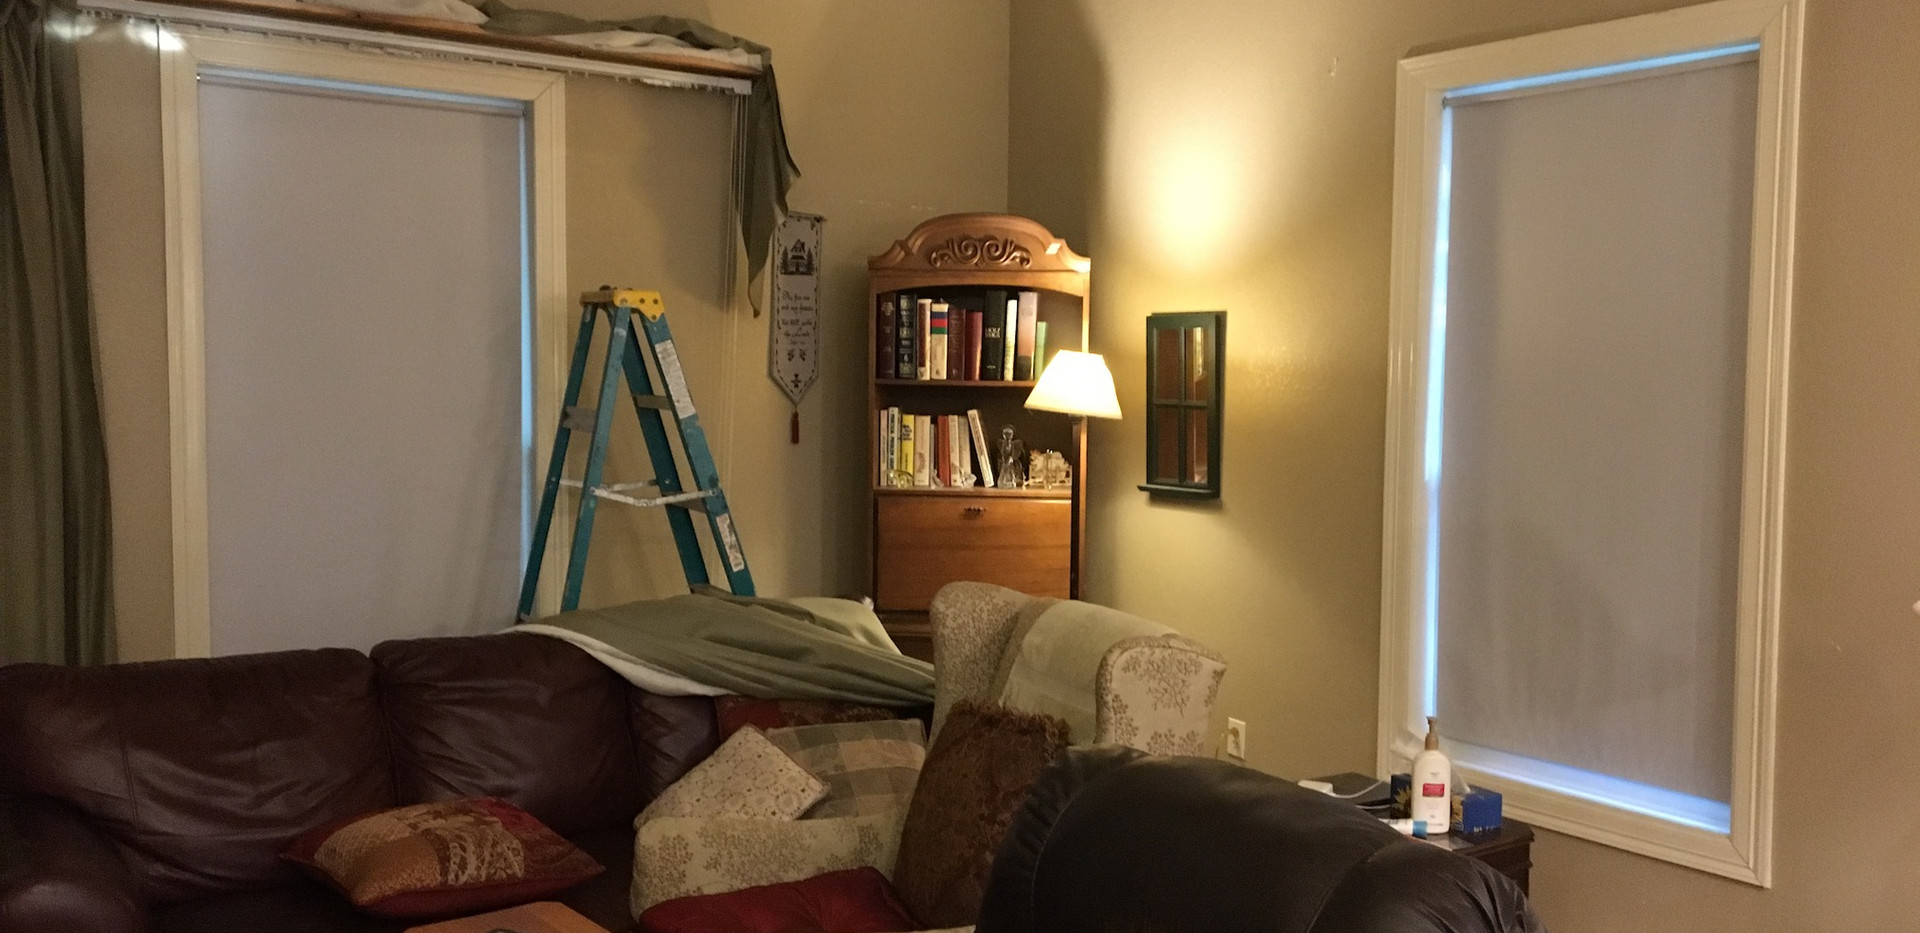 Taking old drapes down